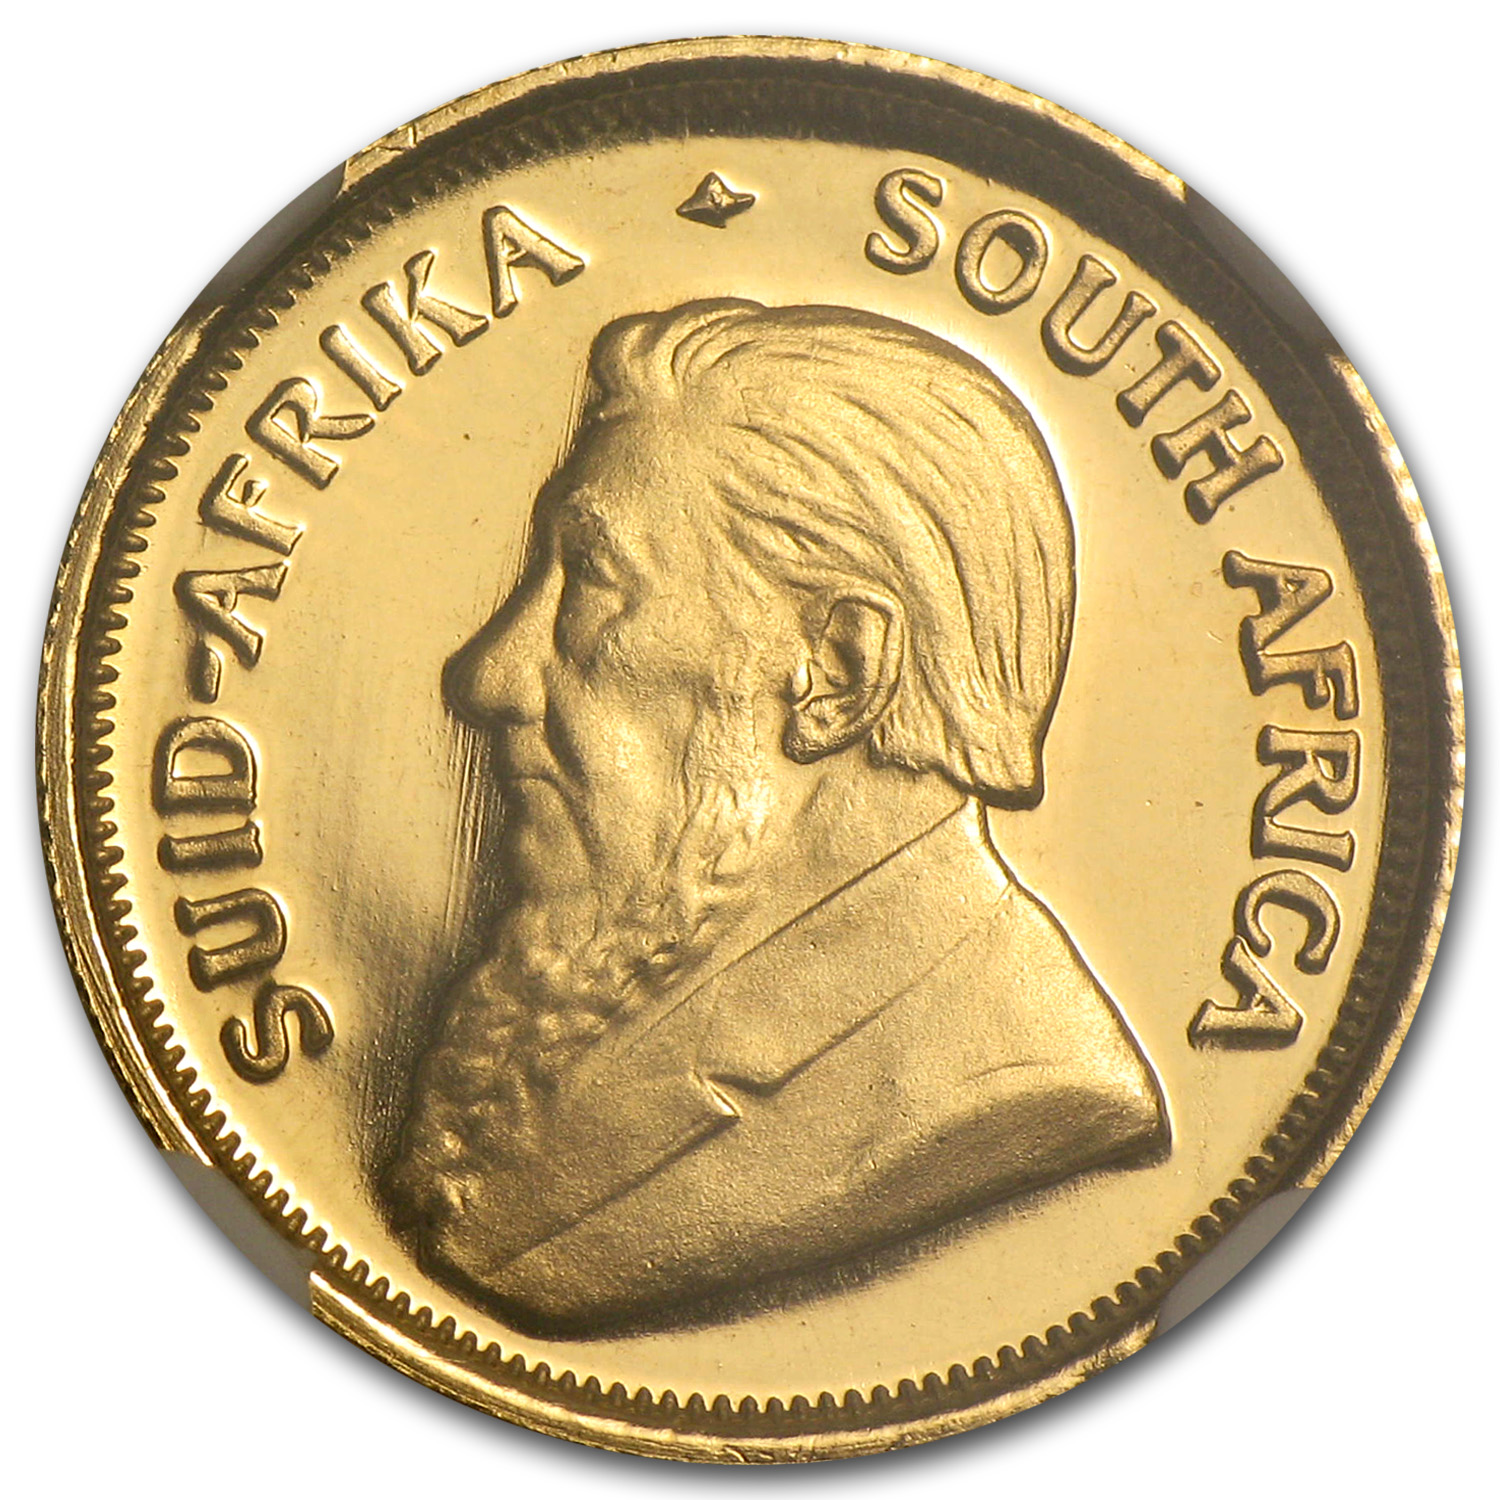 1987 South Africa 1/10 oz Gold Krugerrand PF-68 NGC (GRC)